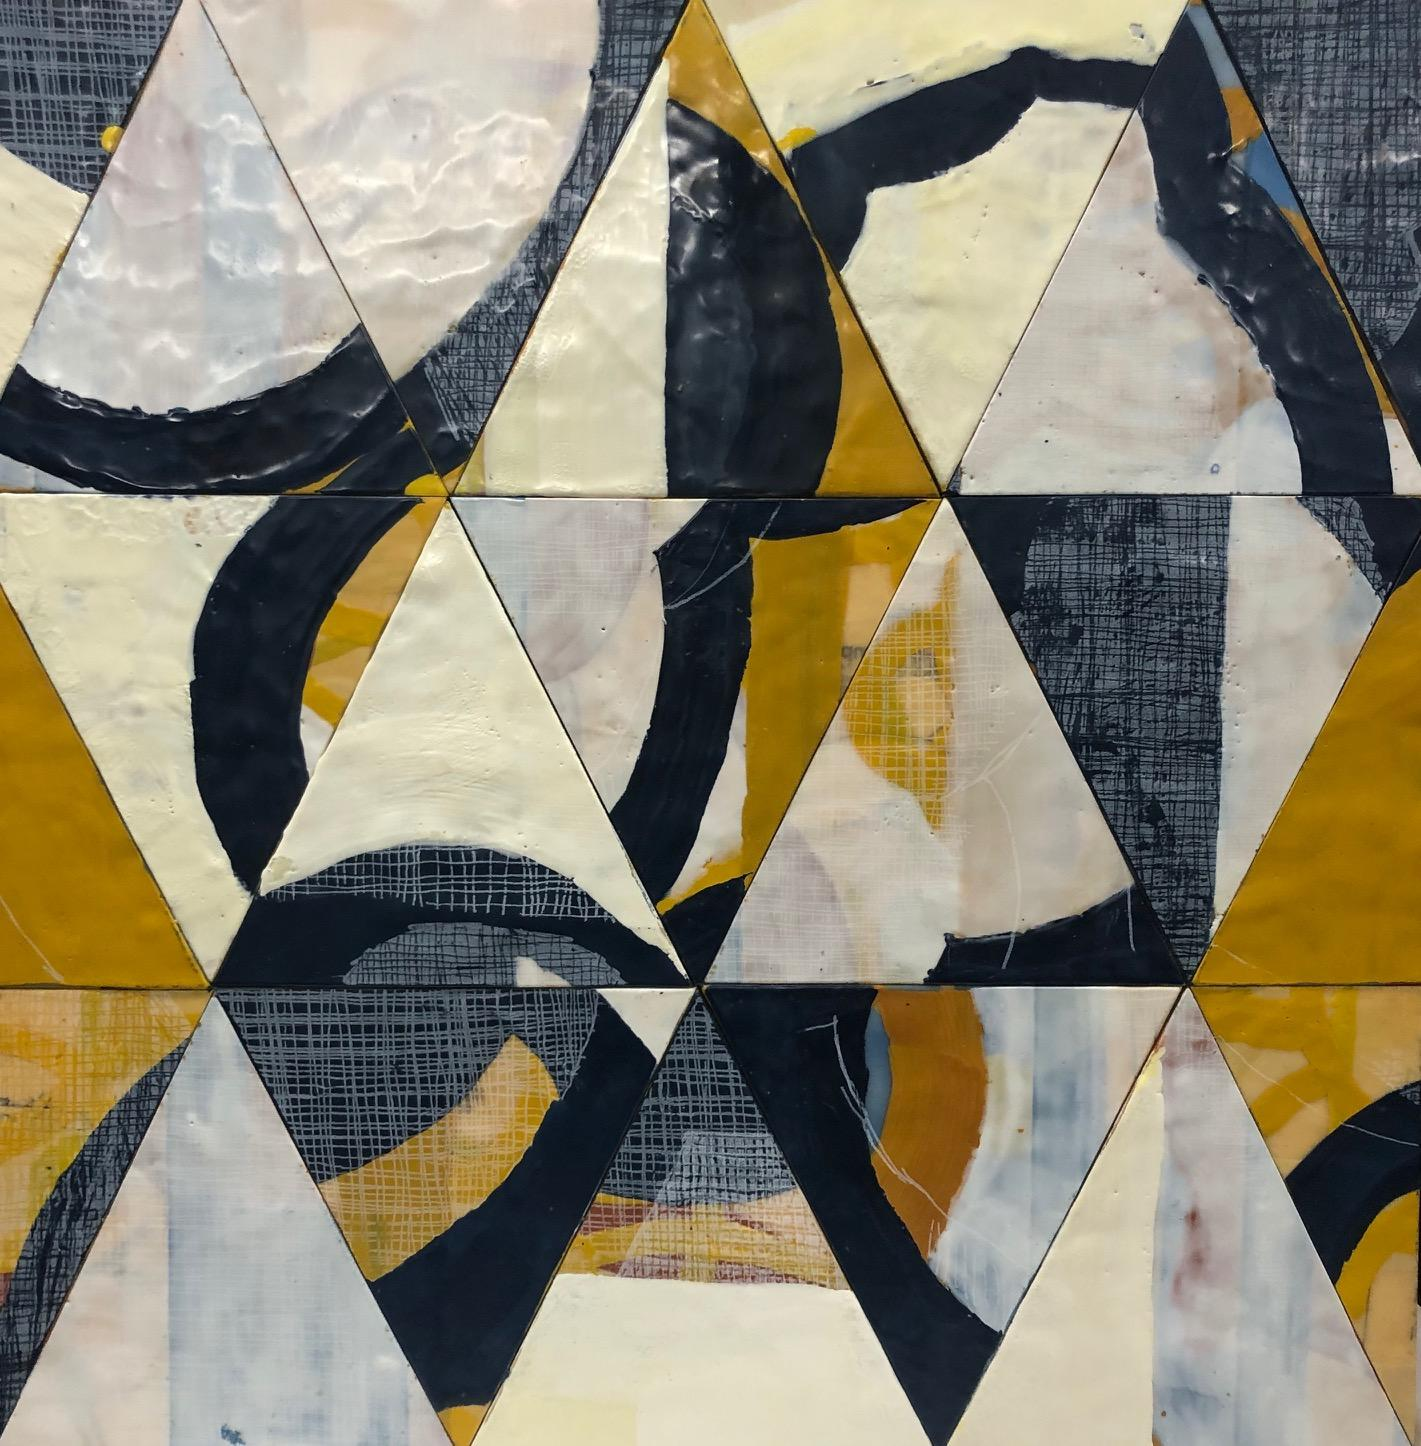 Migration 2, black and white abstract encaustic painting on panel, triangles